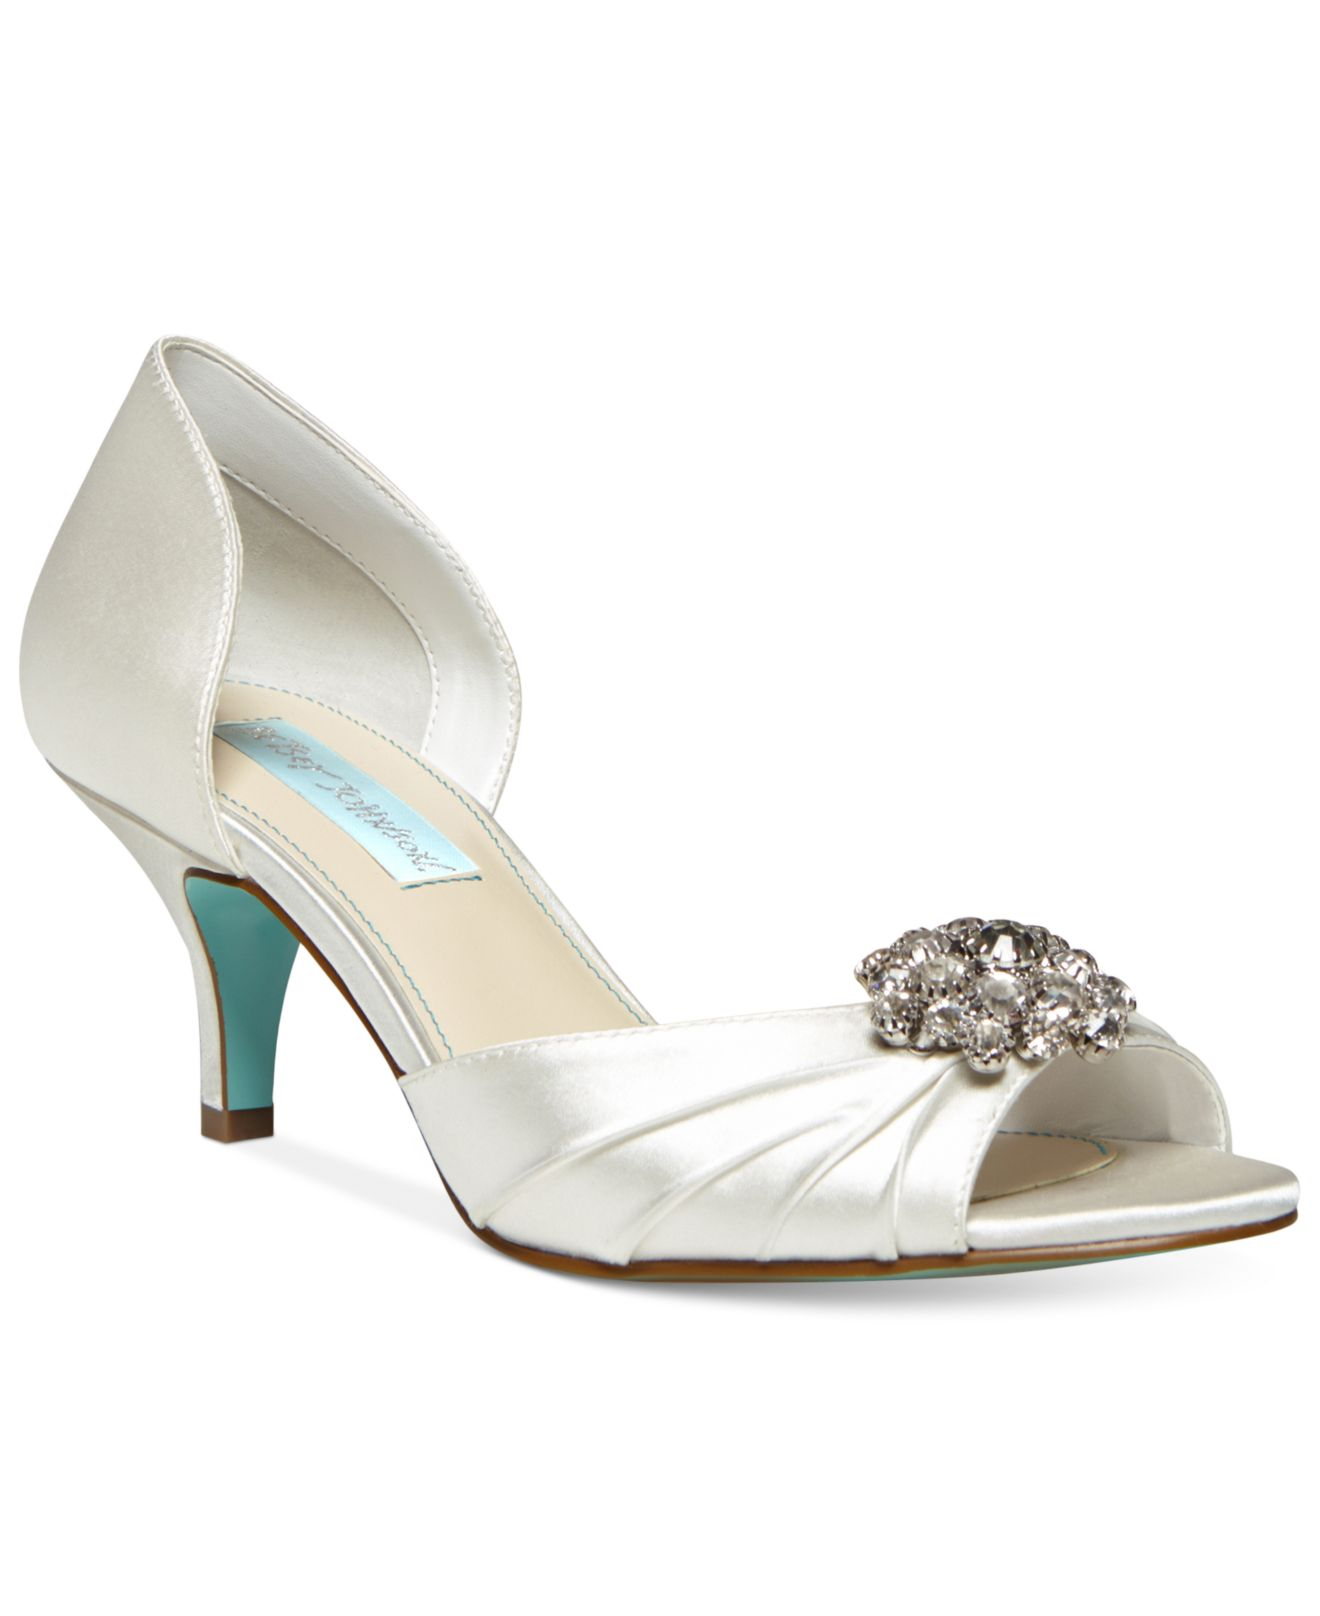 97f868e2248 Lyst - Betsey Johnson Blue By Stun Low Heel Evening Pumps in White